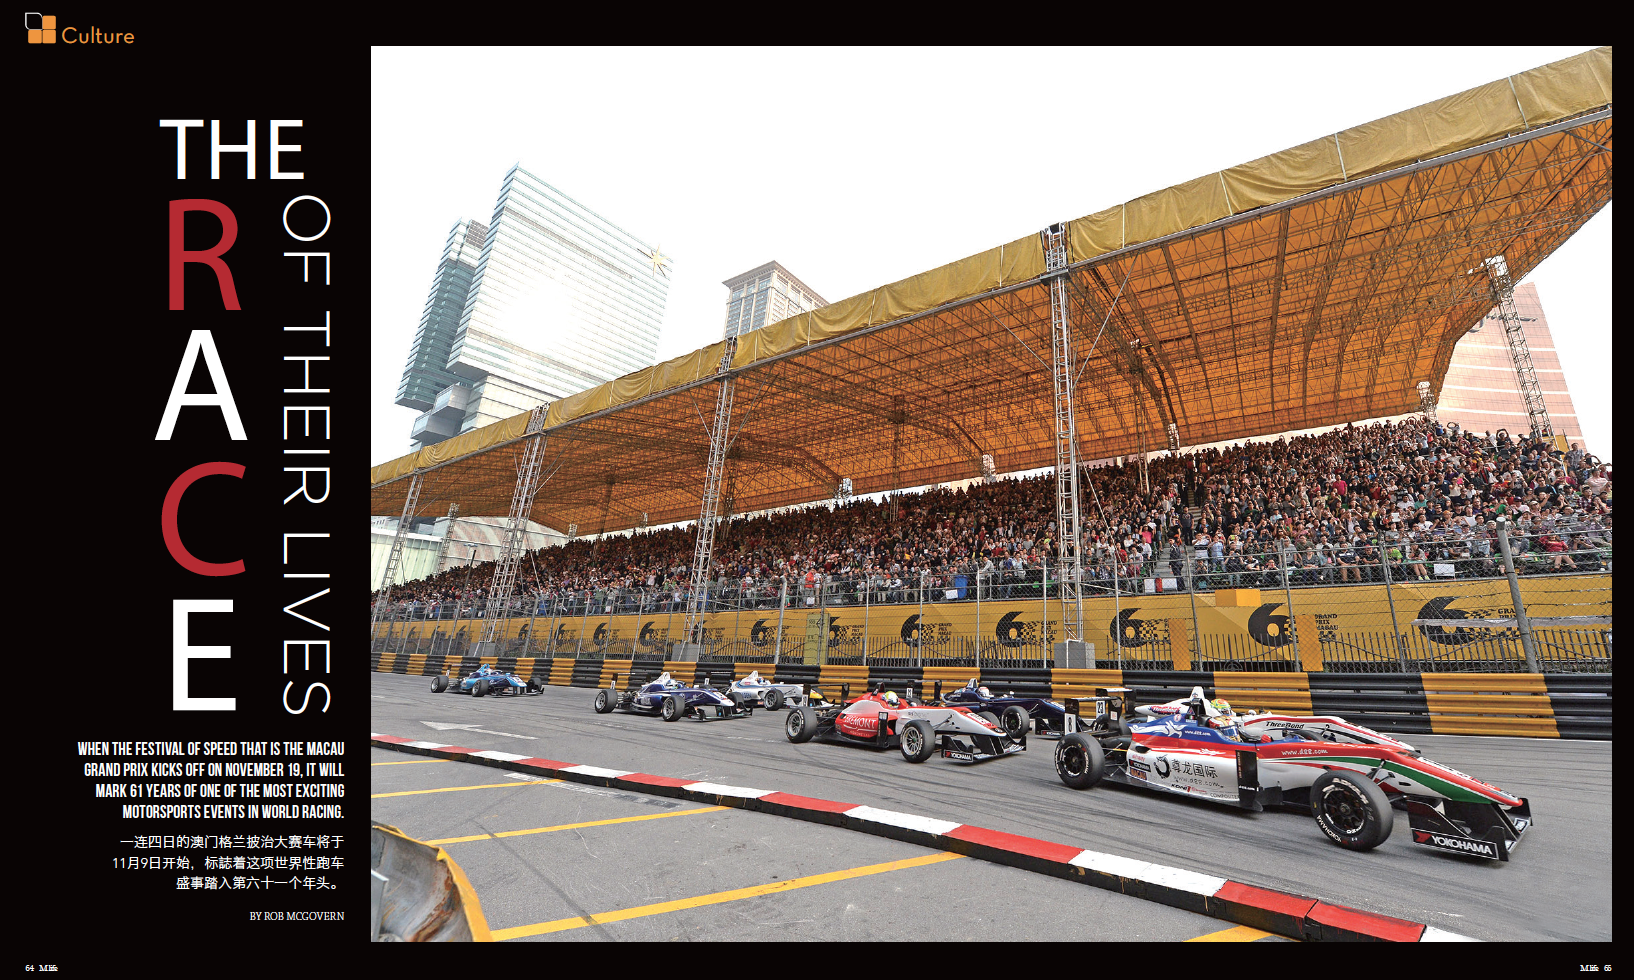 The Macau Grand Prix